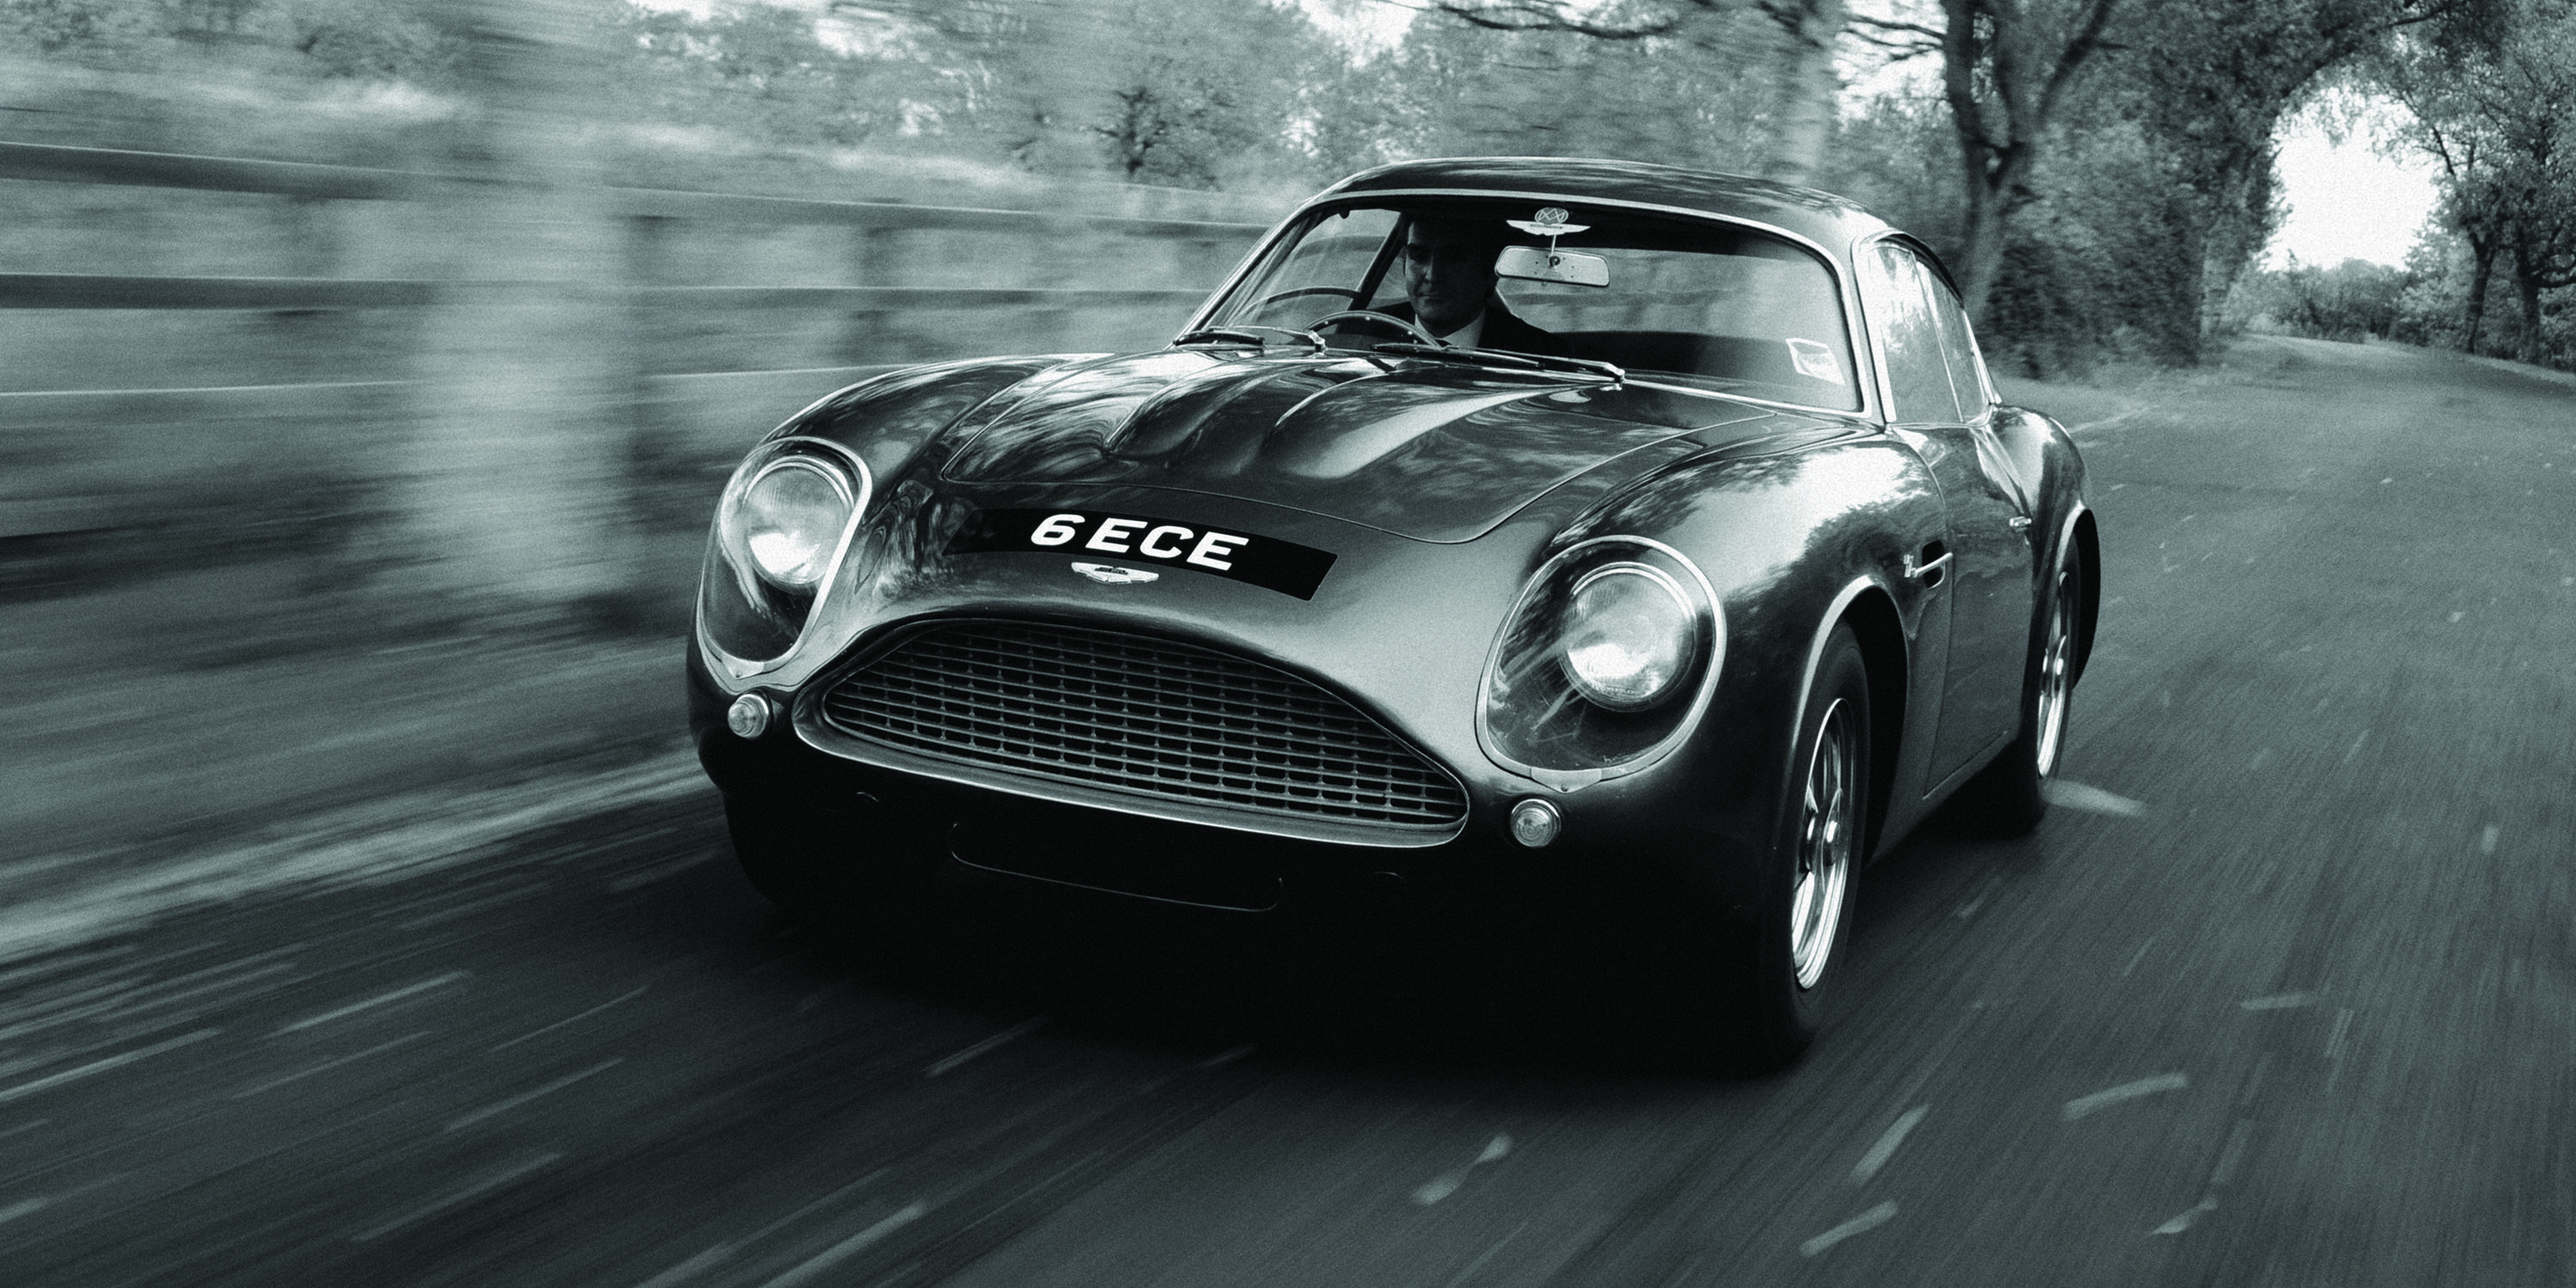 Aston Martin Is Putting The Achingly Gorgeous Db4 Gt Zagato Back In Production